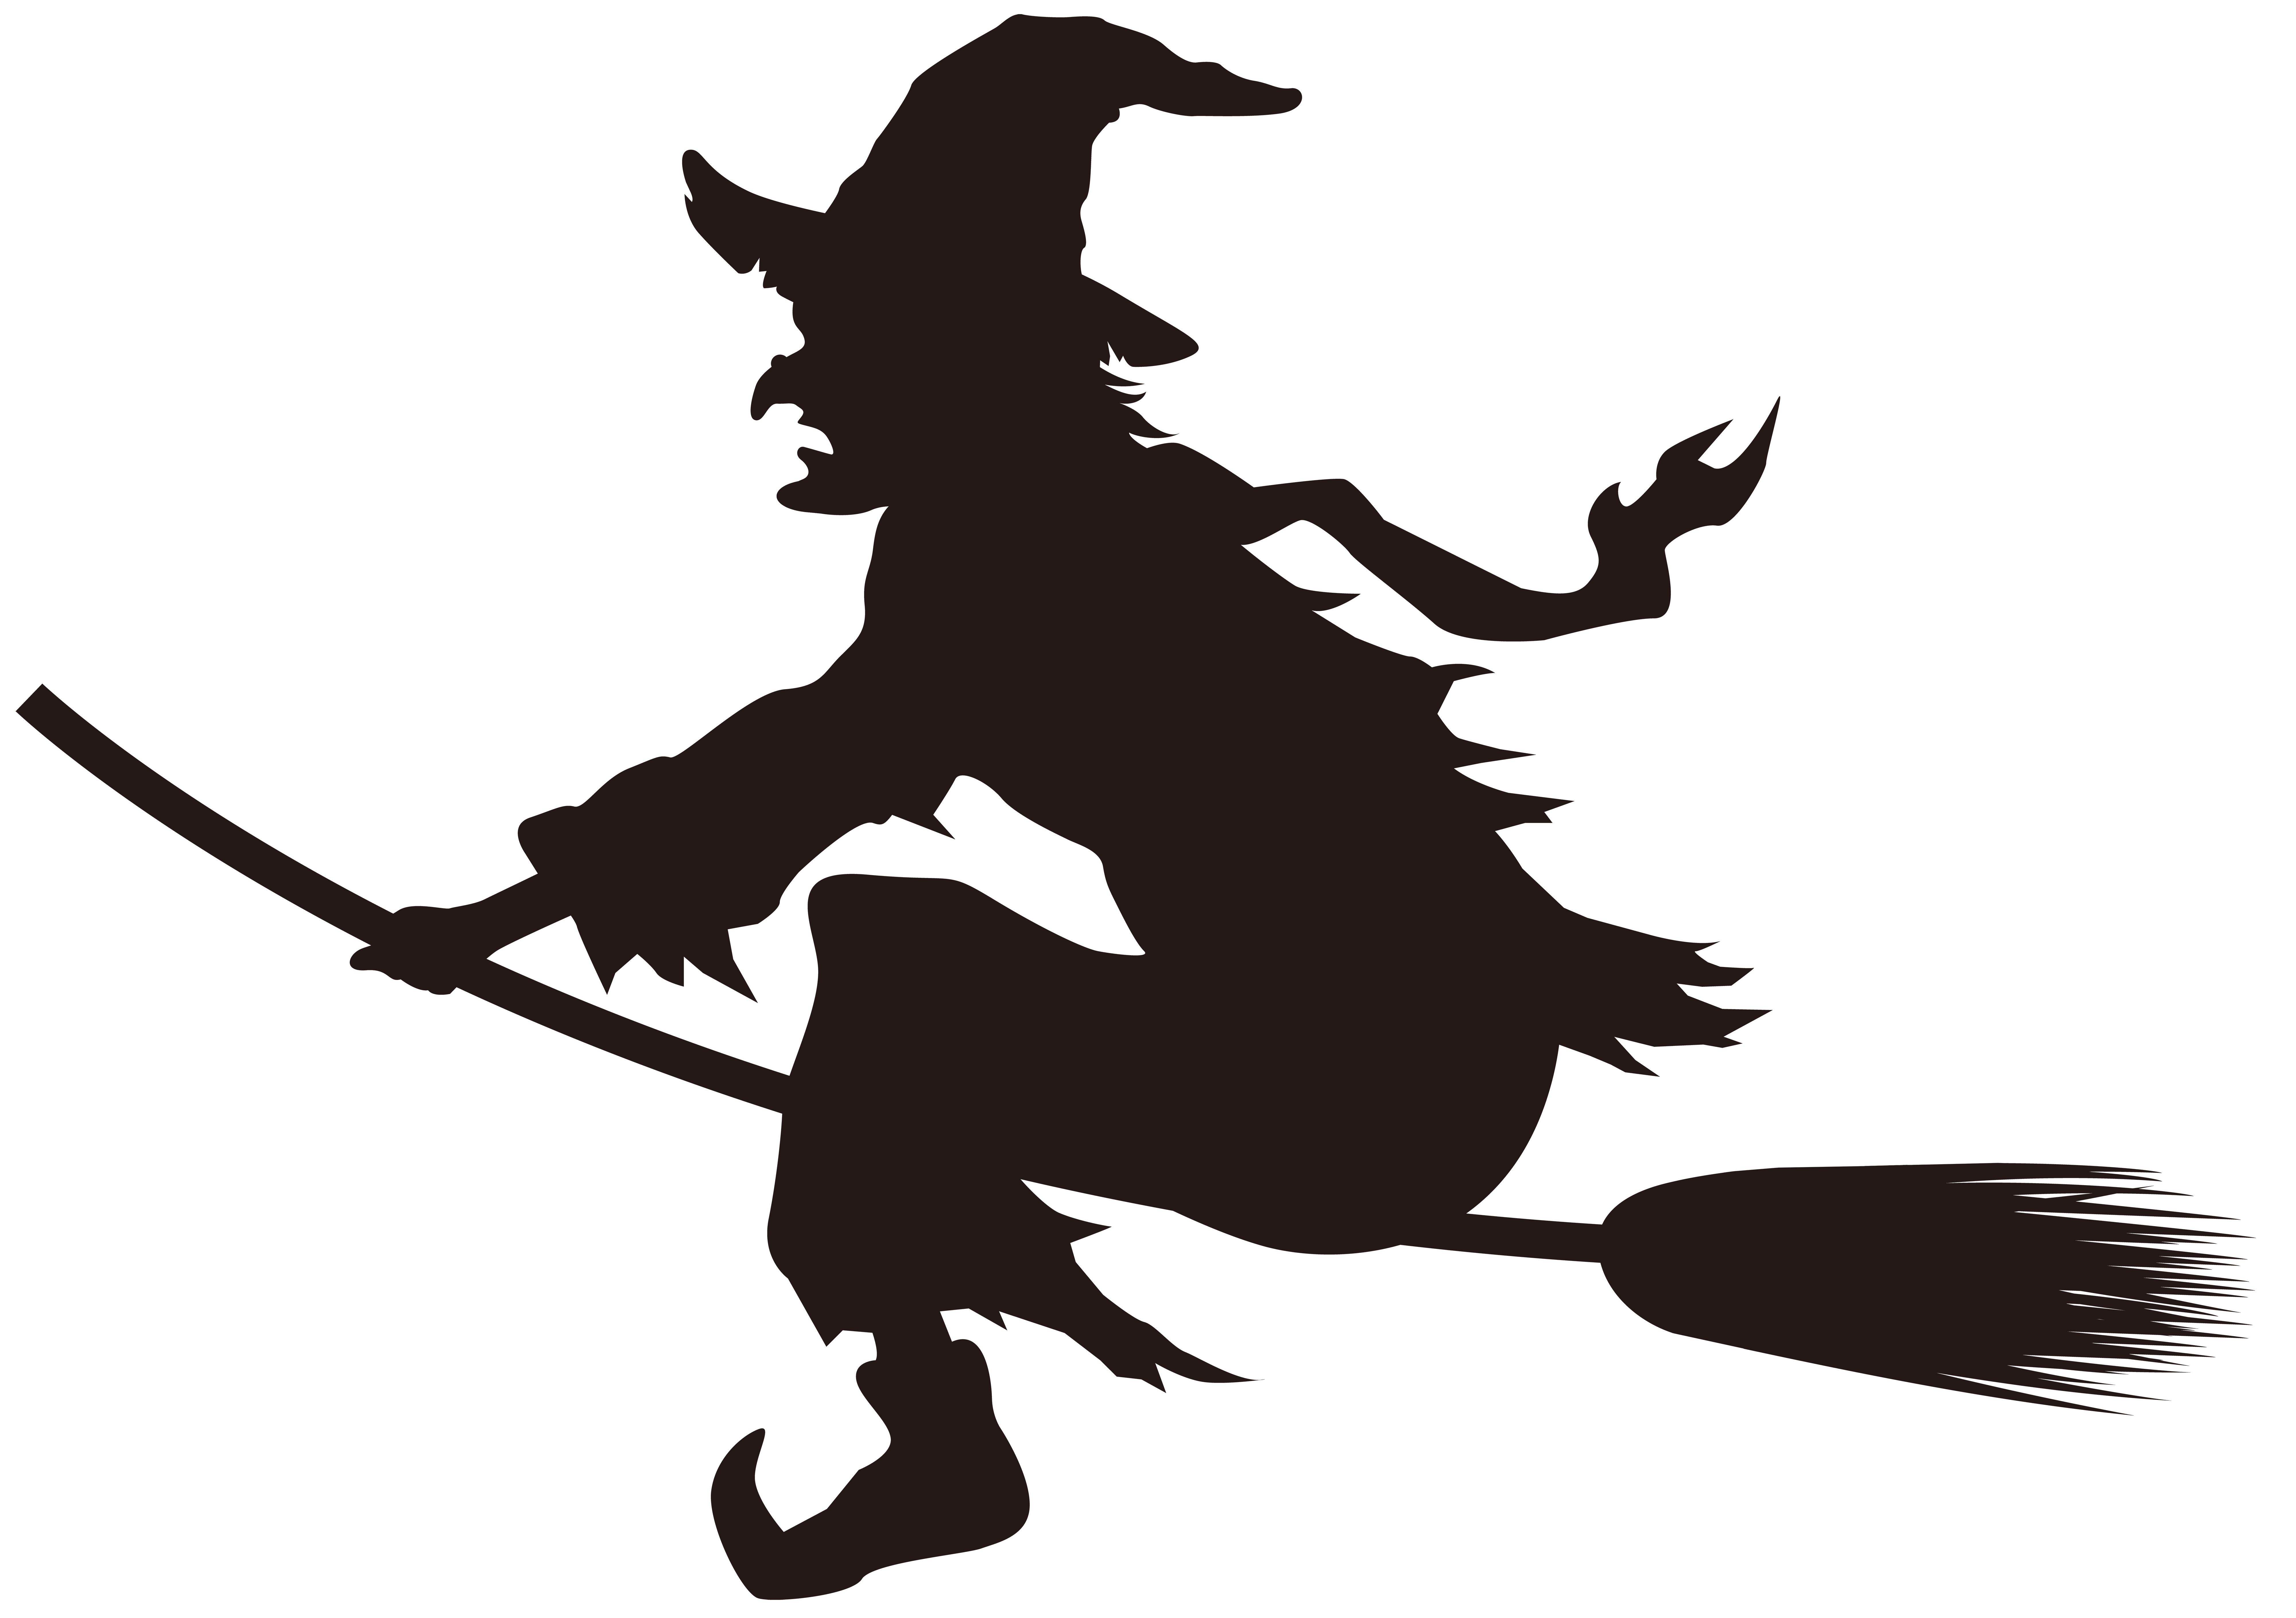 Halloween on silhouette png. Witch clipart broom clip art